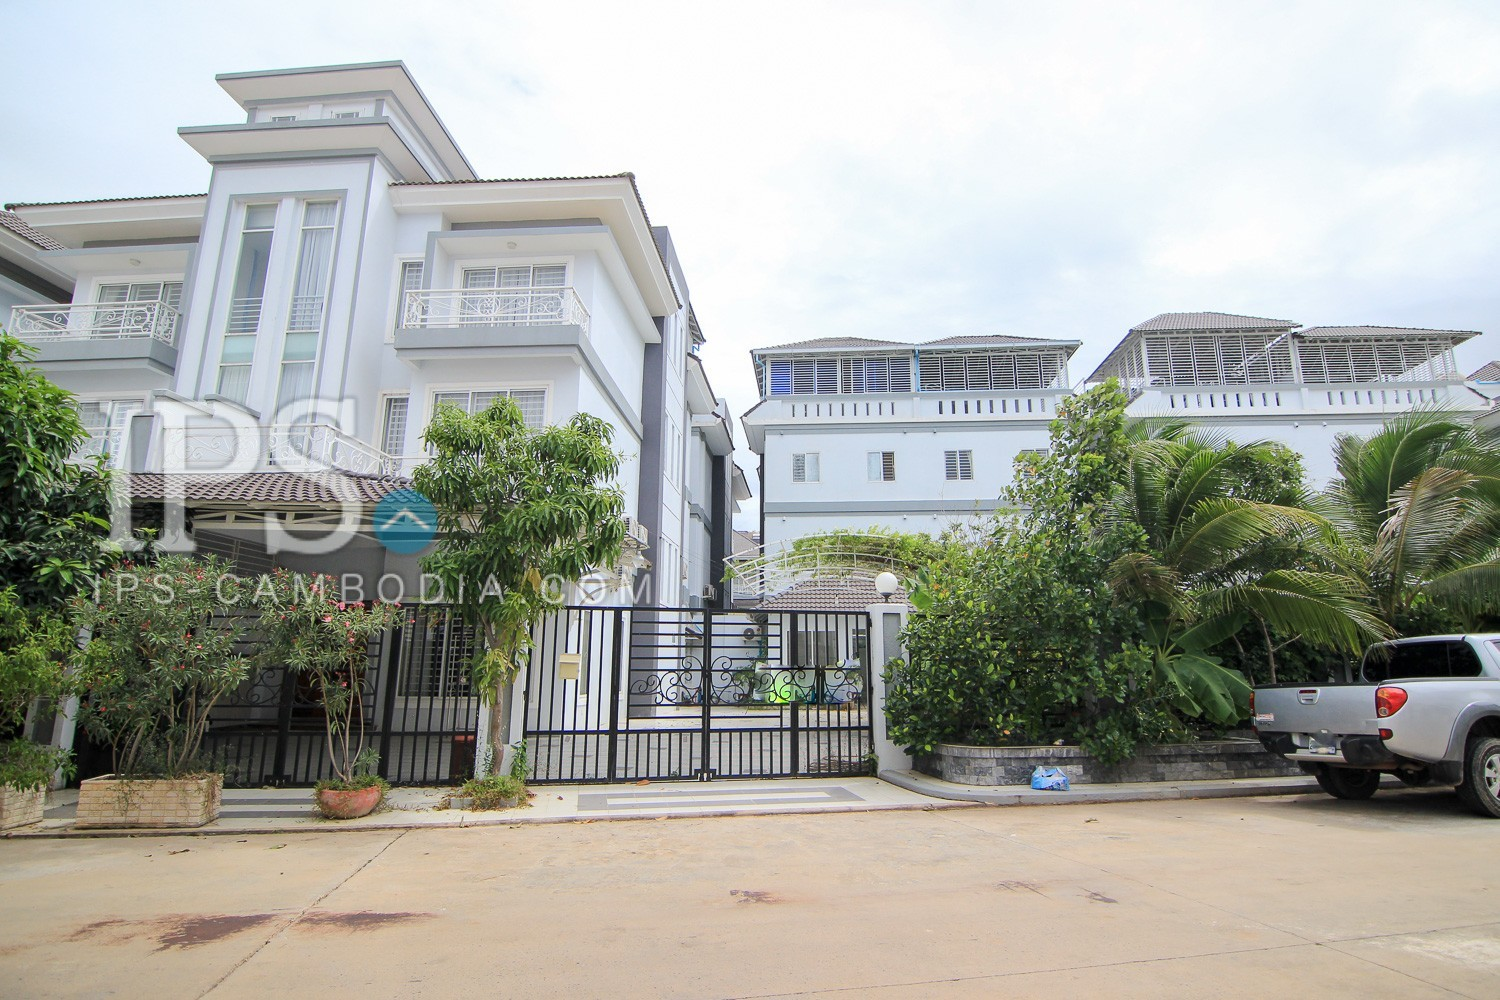 4 Bedrooms House and Lot For Sale in Phnom Penh Thmey, Sen Sok